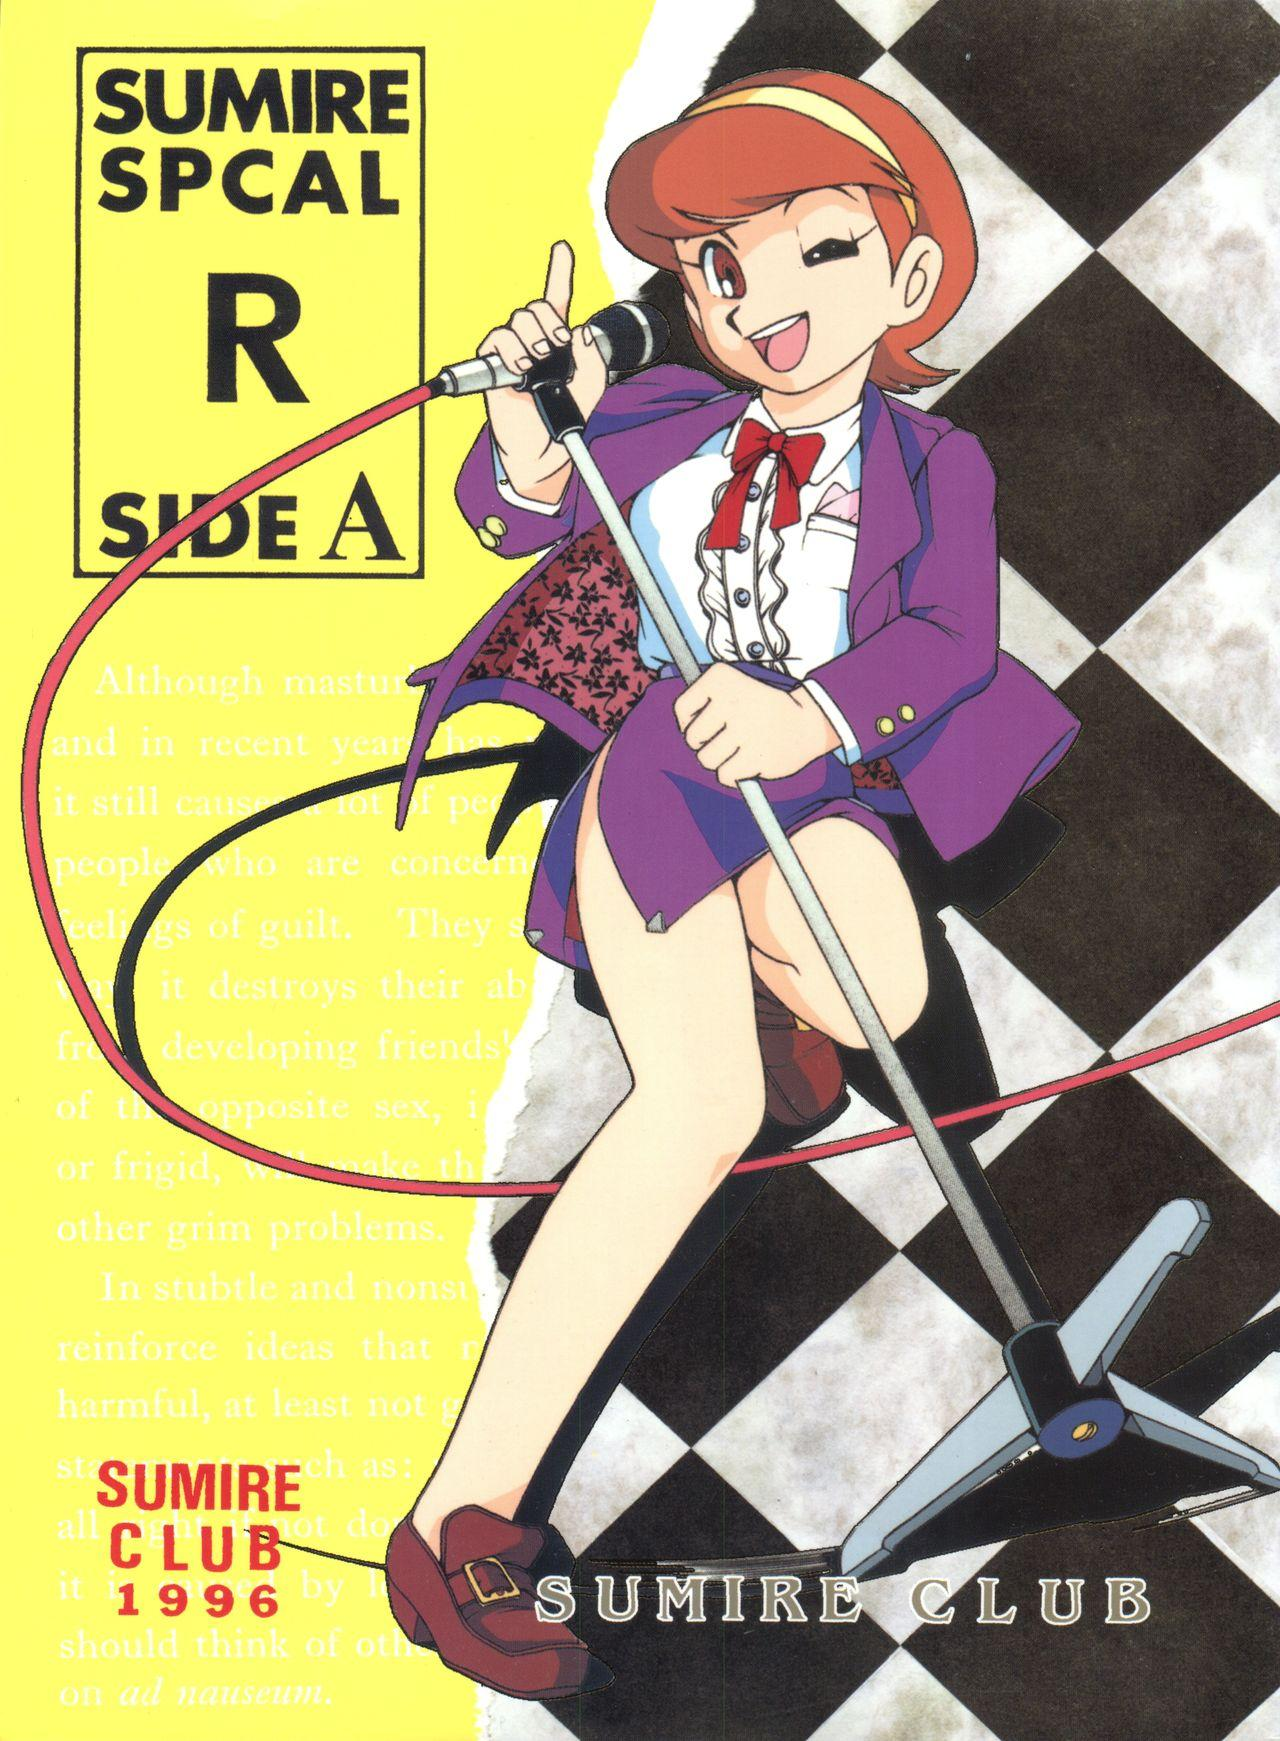 Sumire Special R Side A 0